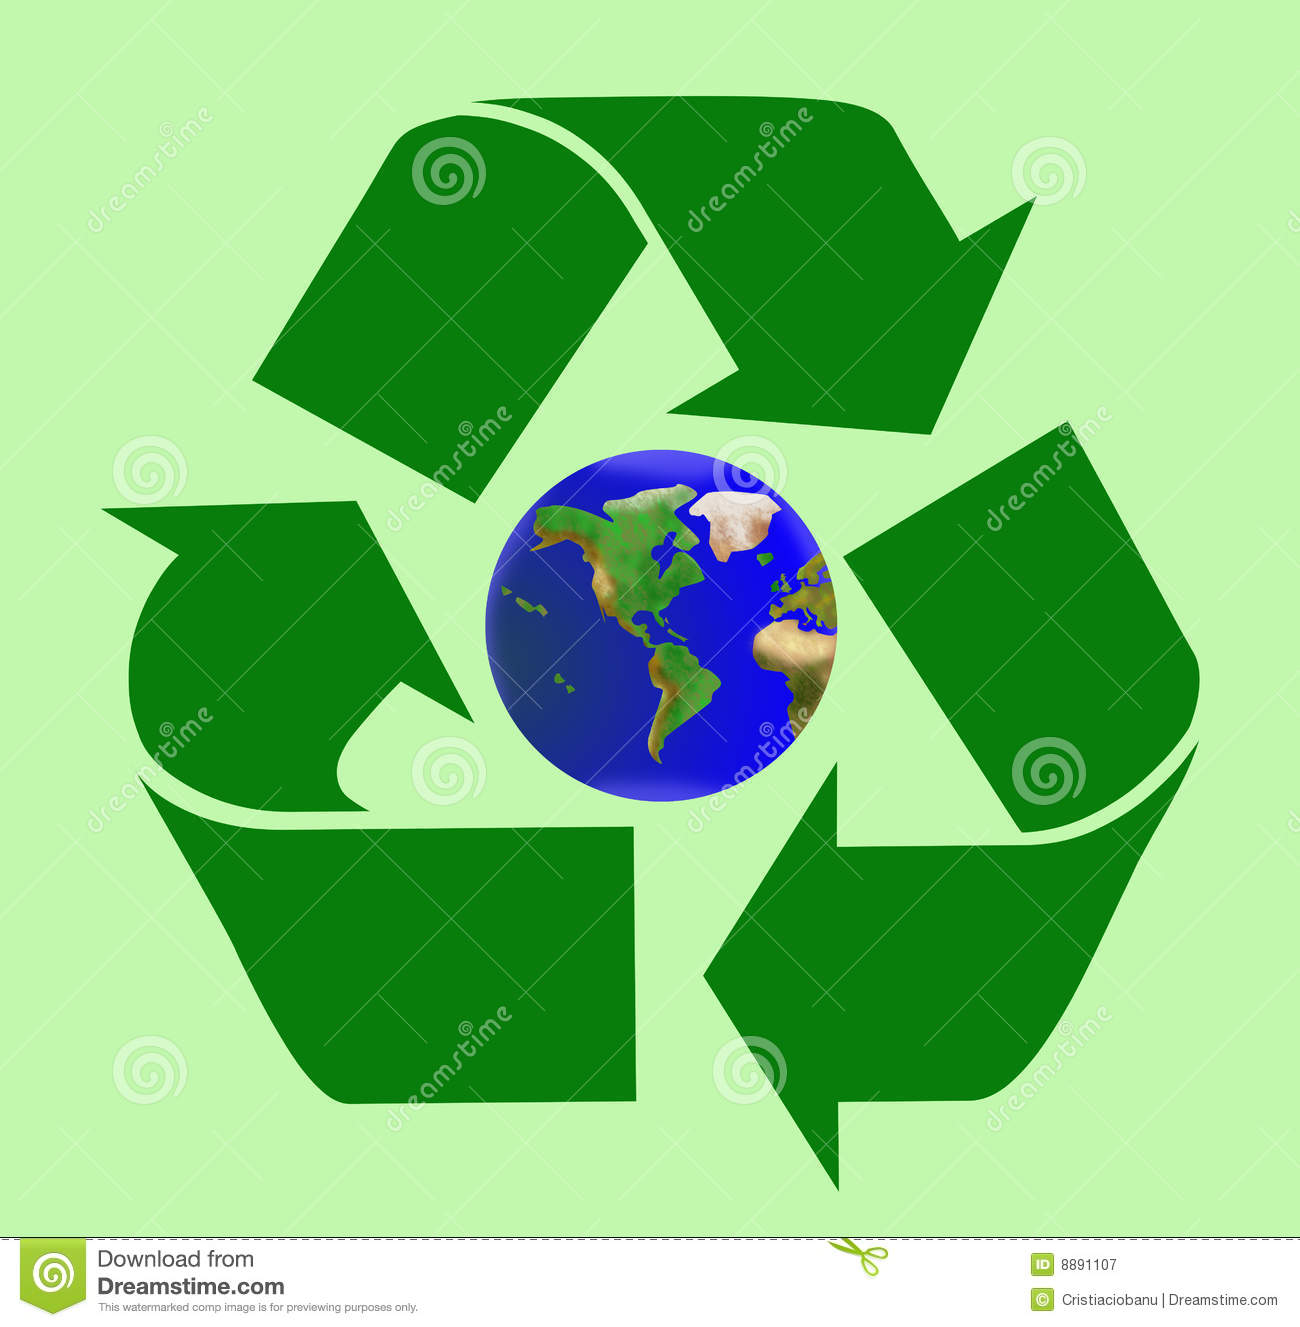 Heal the world by recycling